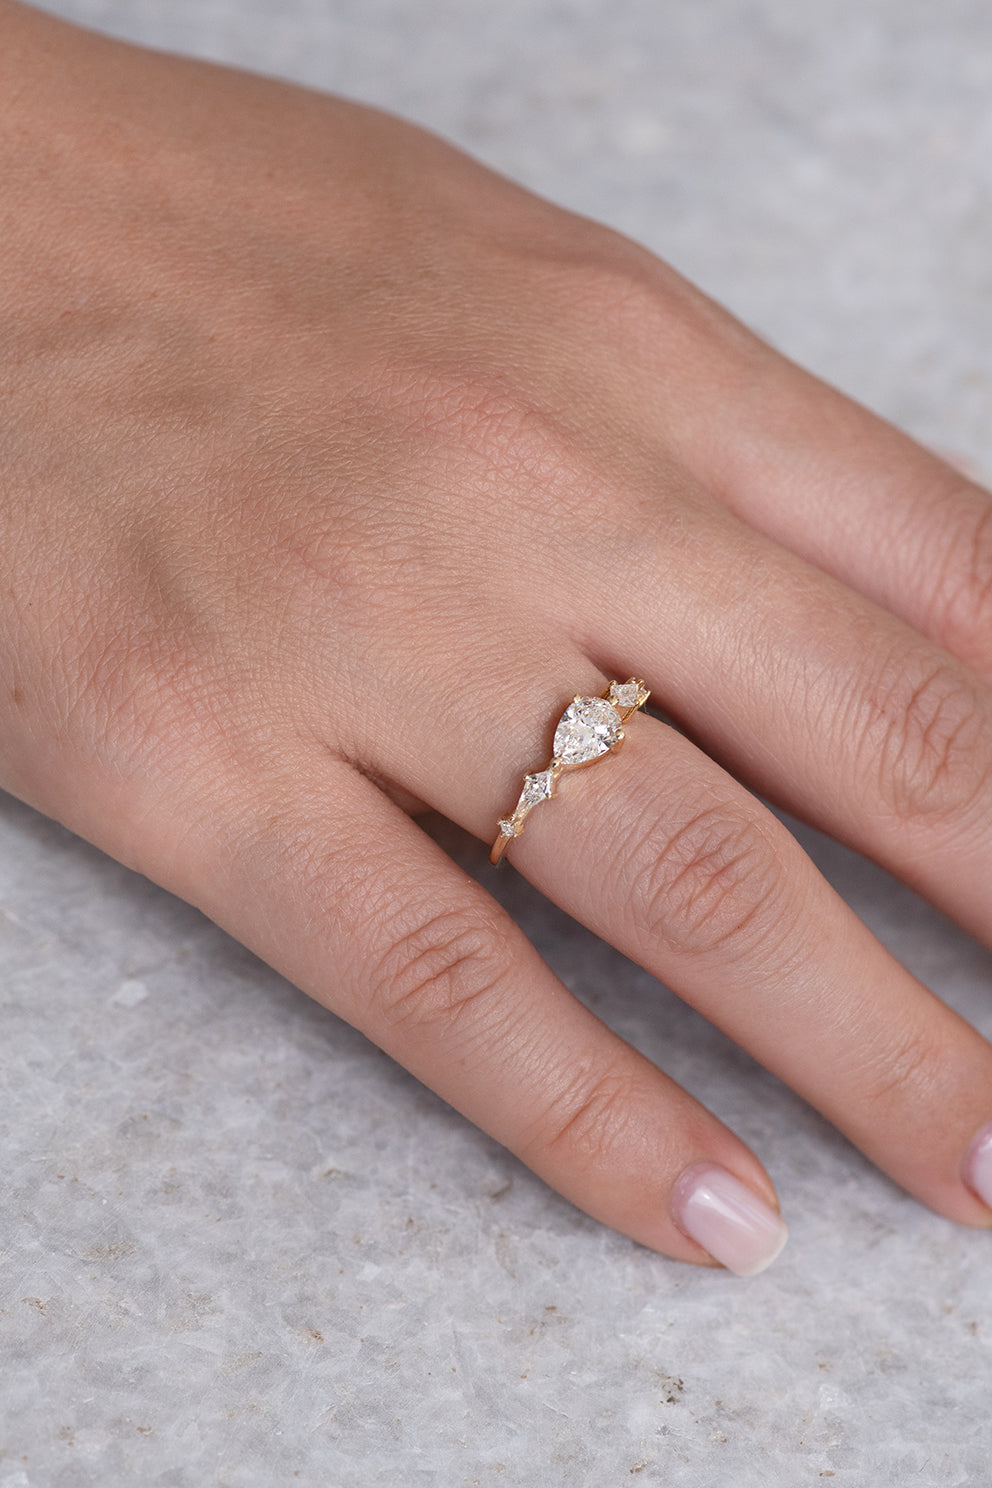 Pear Shaped Engagement Ring - Diamond Lineup Ring Look Down View in Sunlight